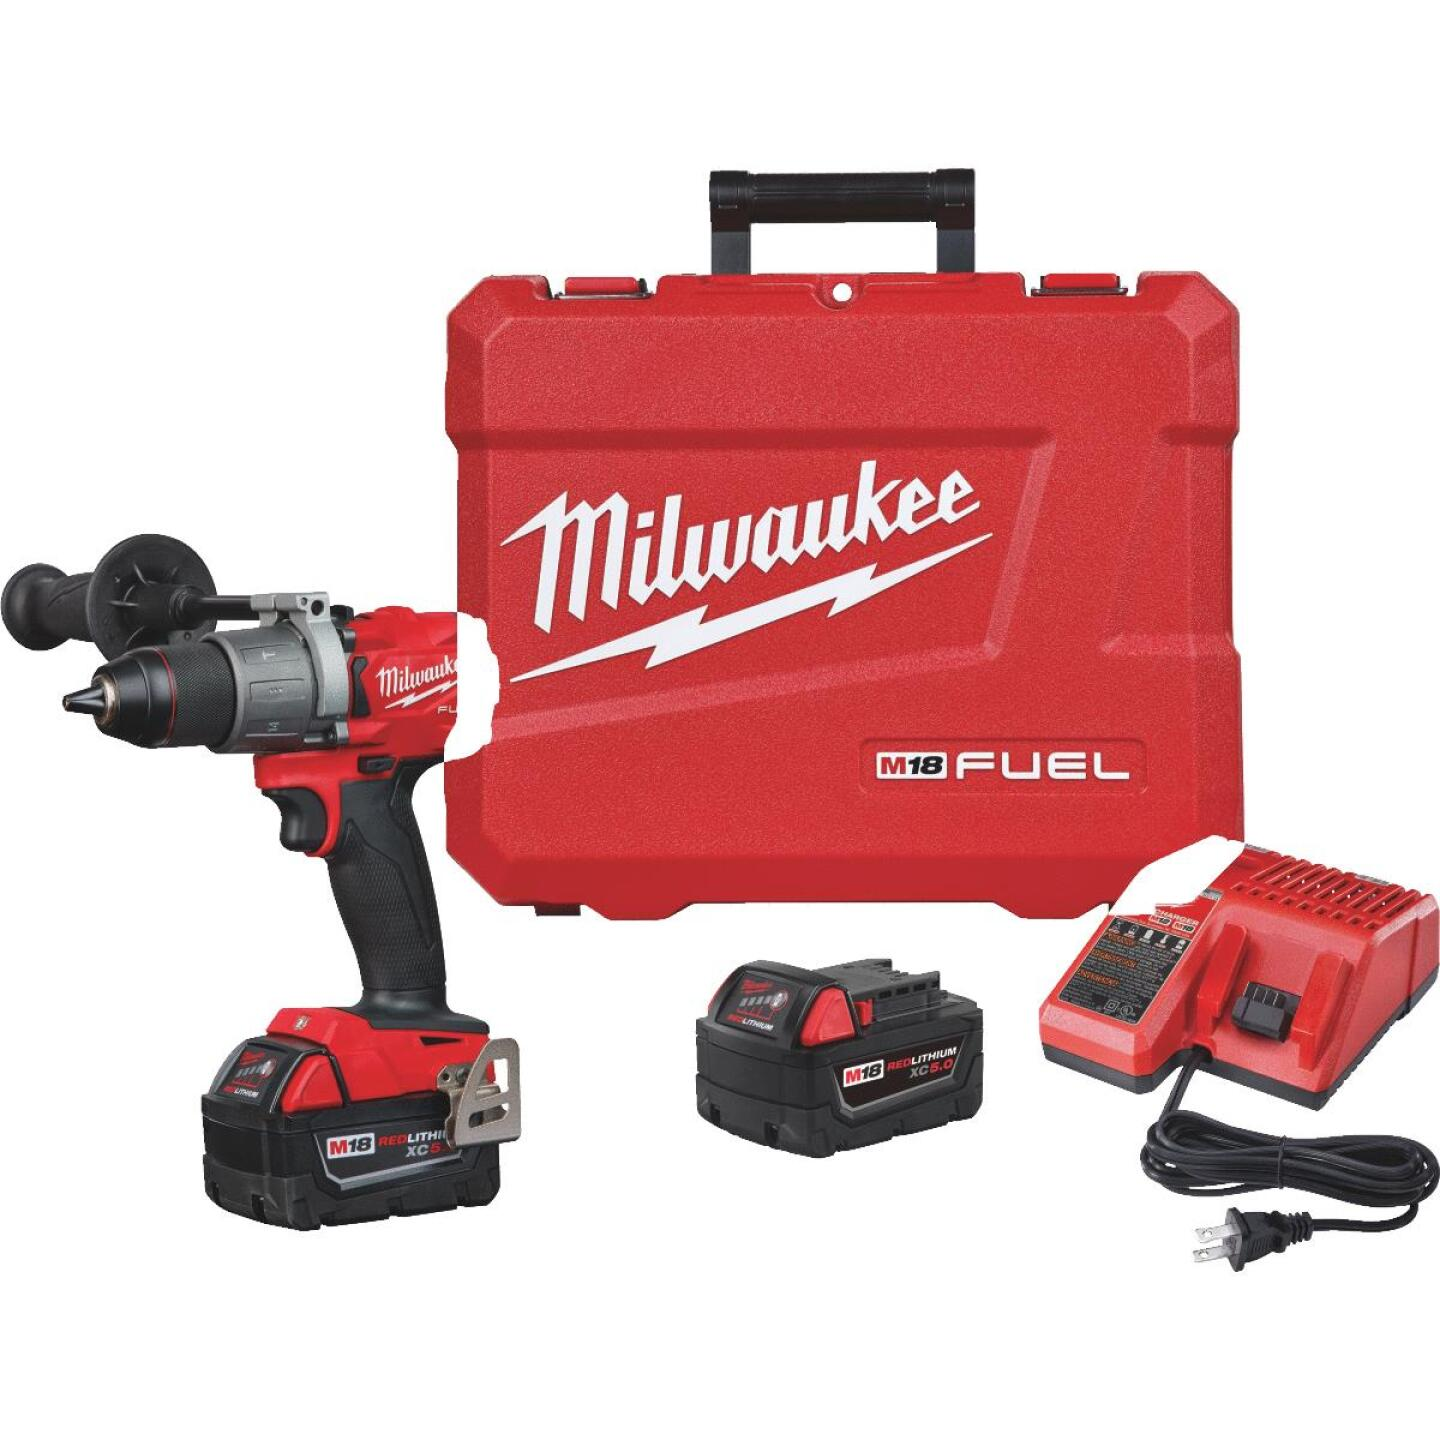 Milwaukee M18 FUEL 18-Volt XC Lithium-Ion Brushless 1/2 In. Cordless Hammer Drill Kit Image 4